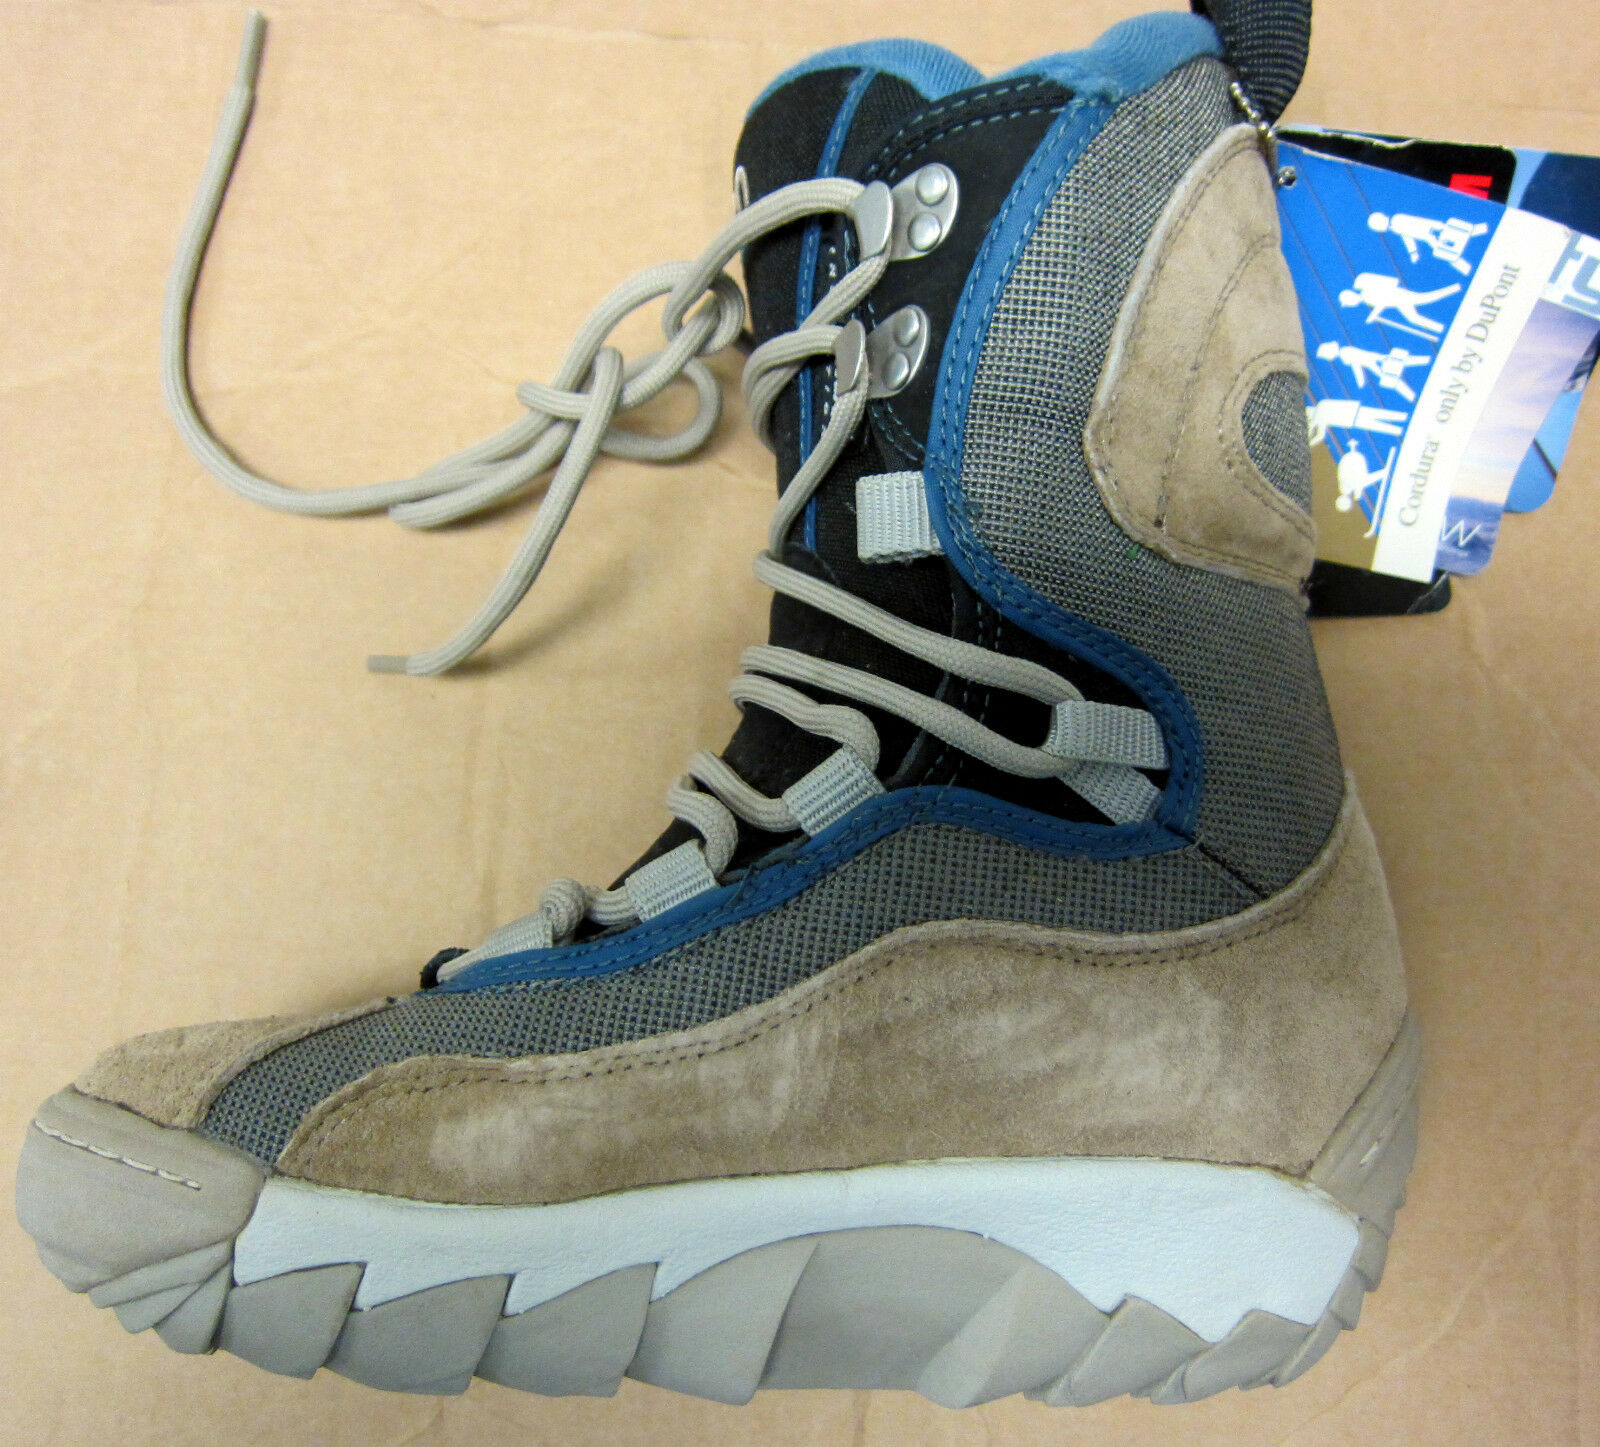 FLOW Morphan Snowboard Boots  NEW Mens size 5 euro 37 23.9 cm NEW  fast delivery and free shipping on all orders